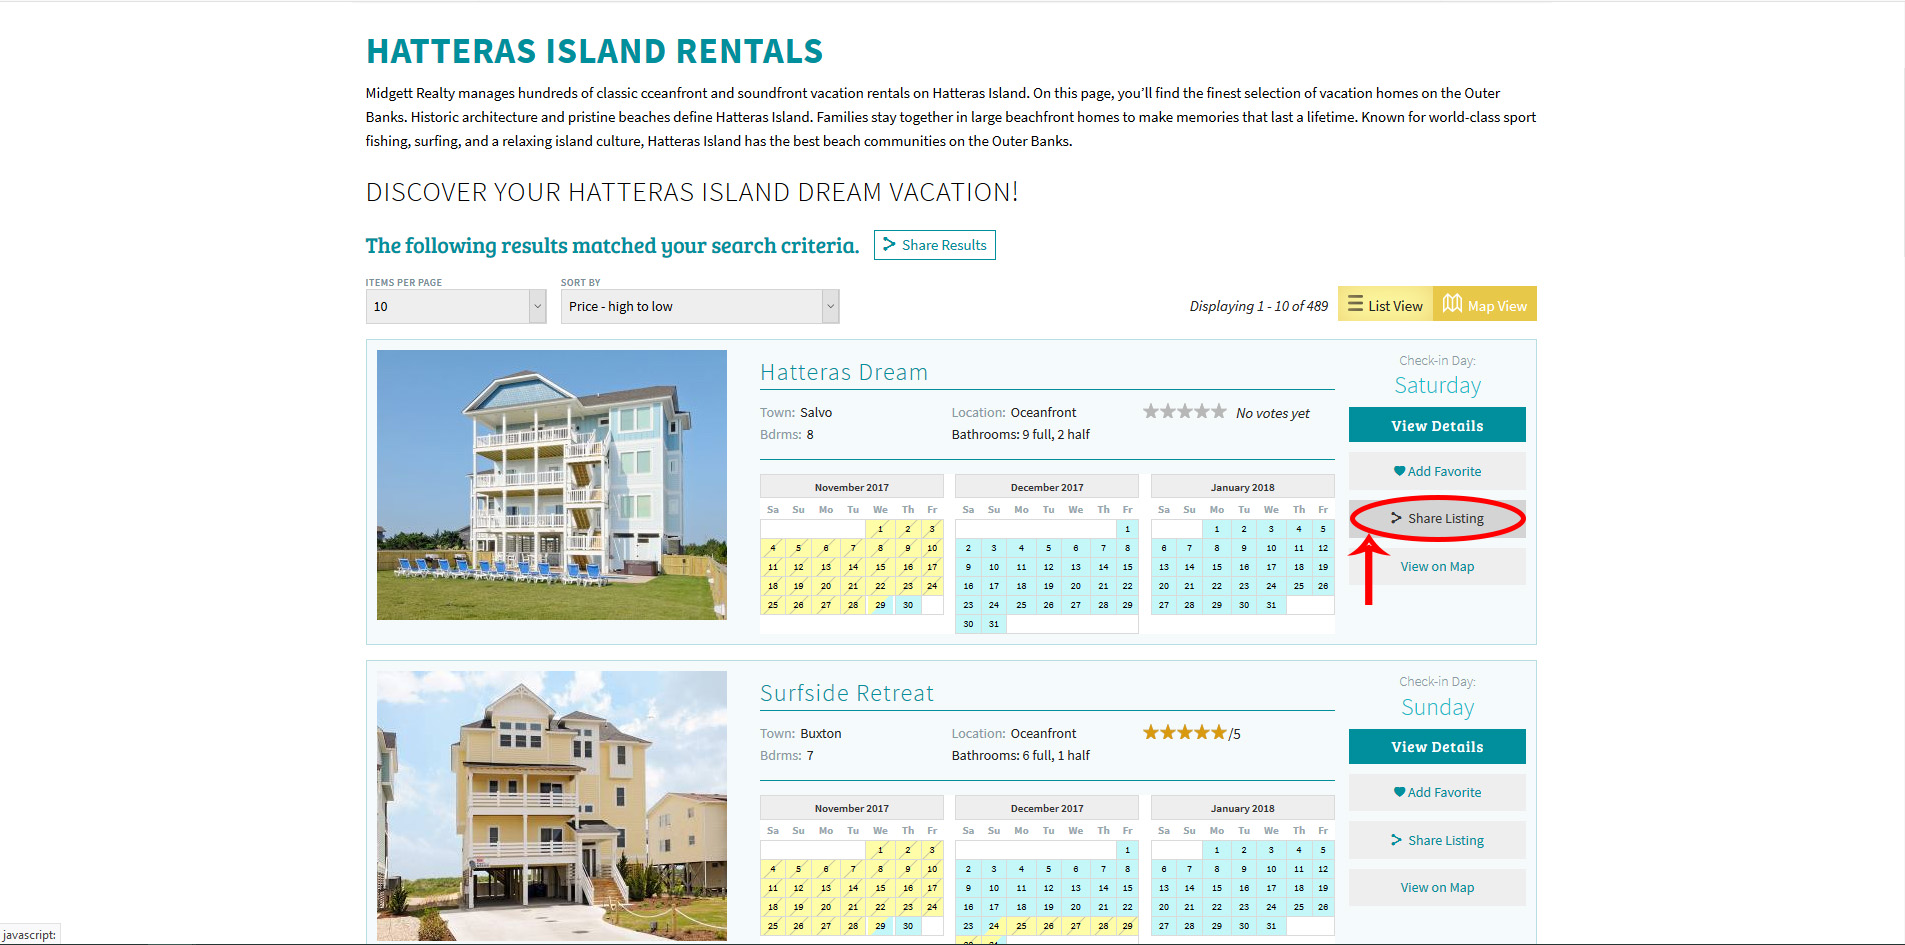 Share the perfect Hatteras Island beach vacation home